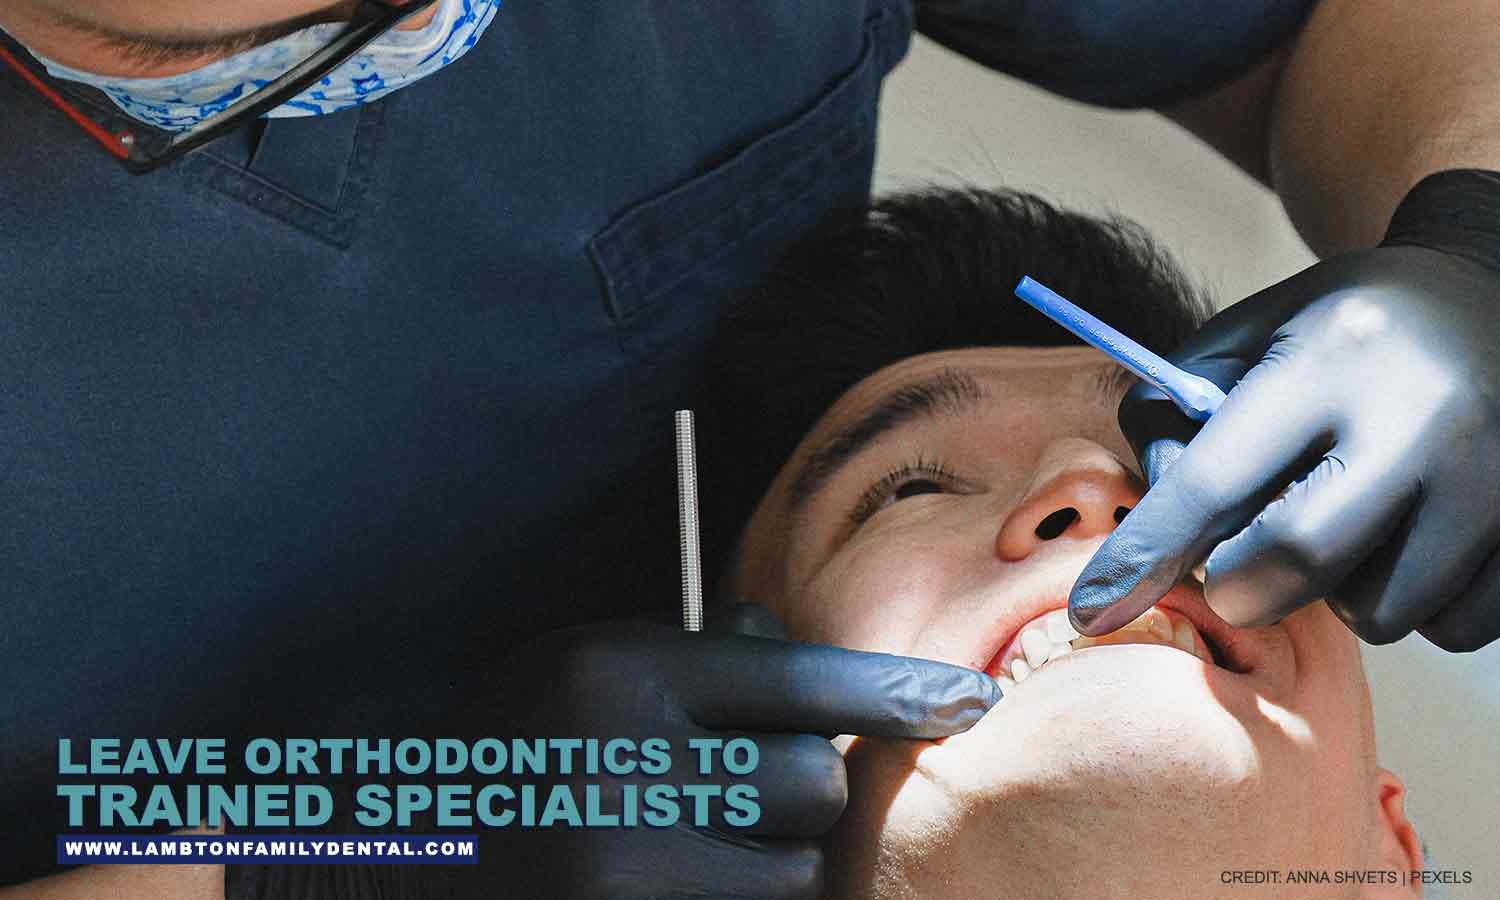 Leave orthodontics to trained specialists